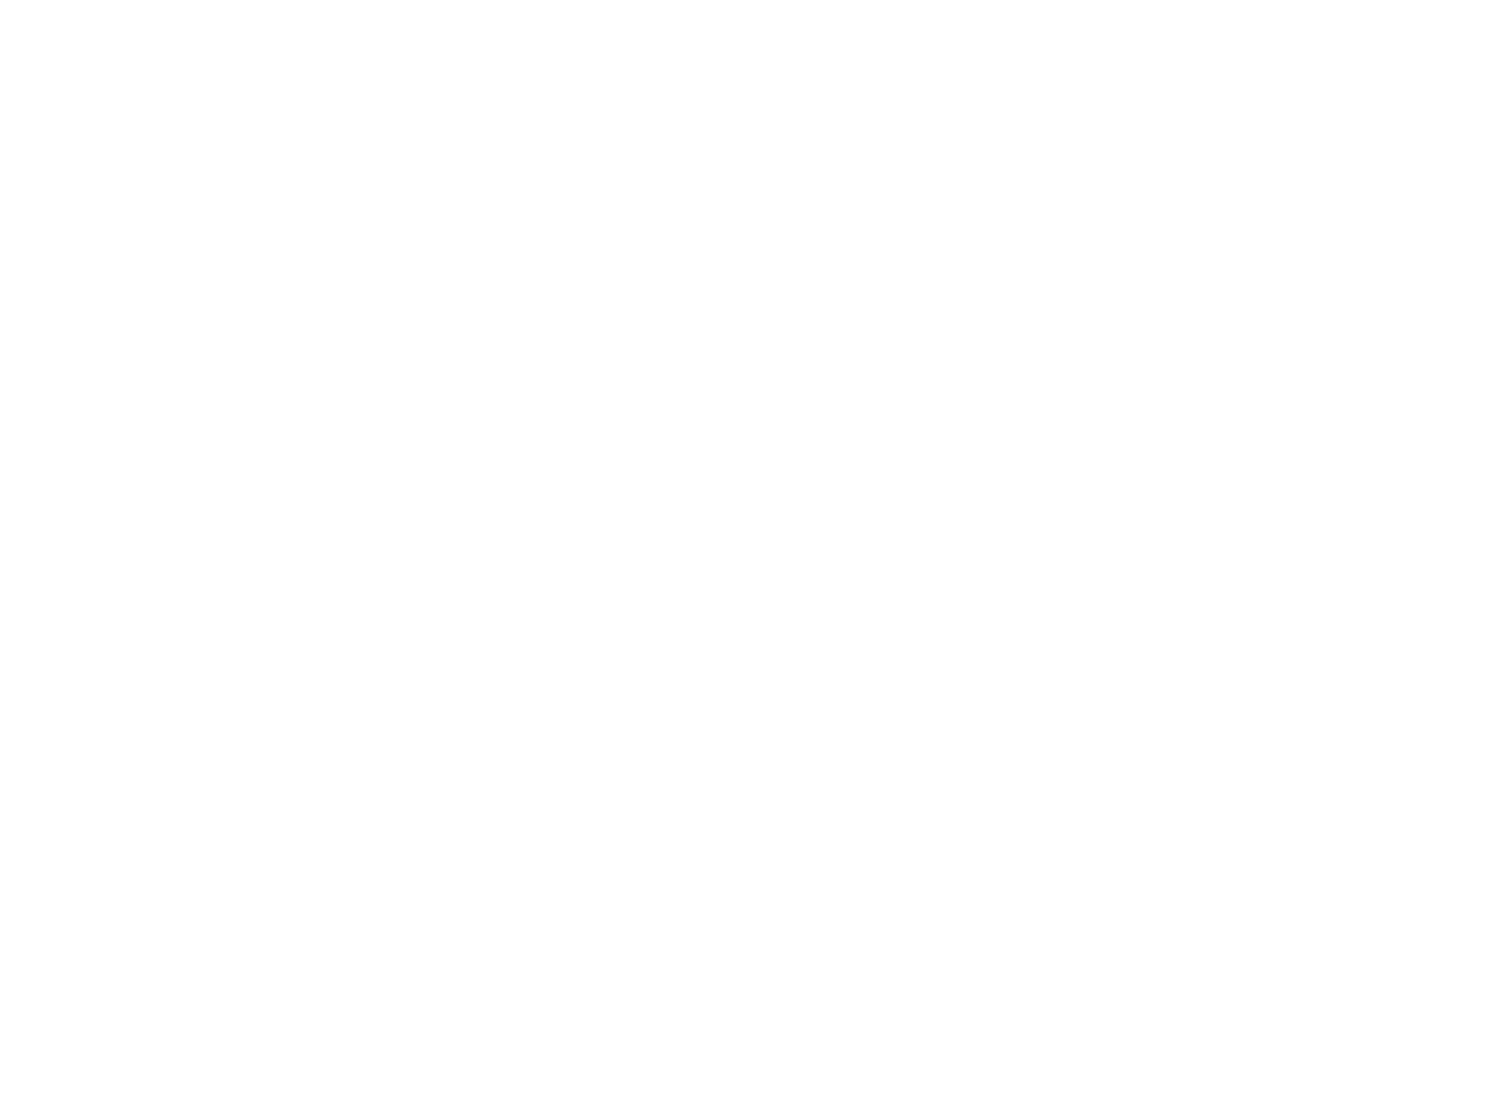 sonocurrent